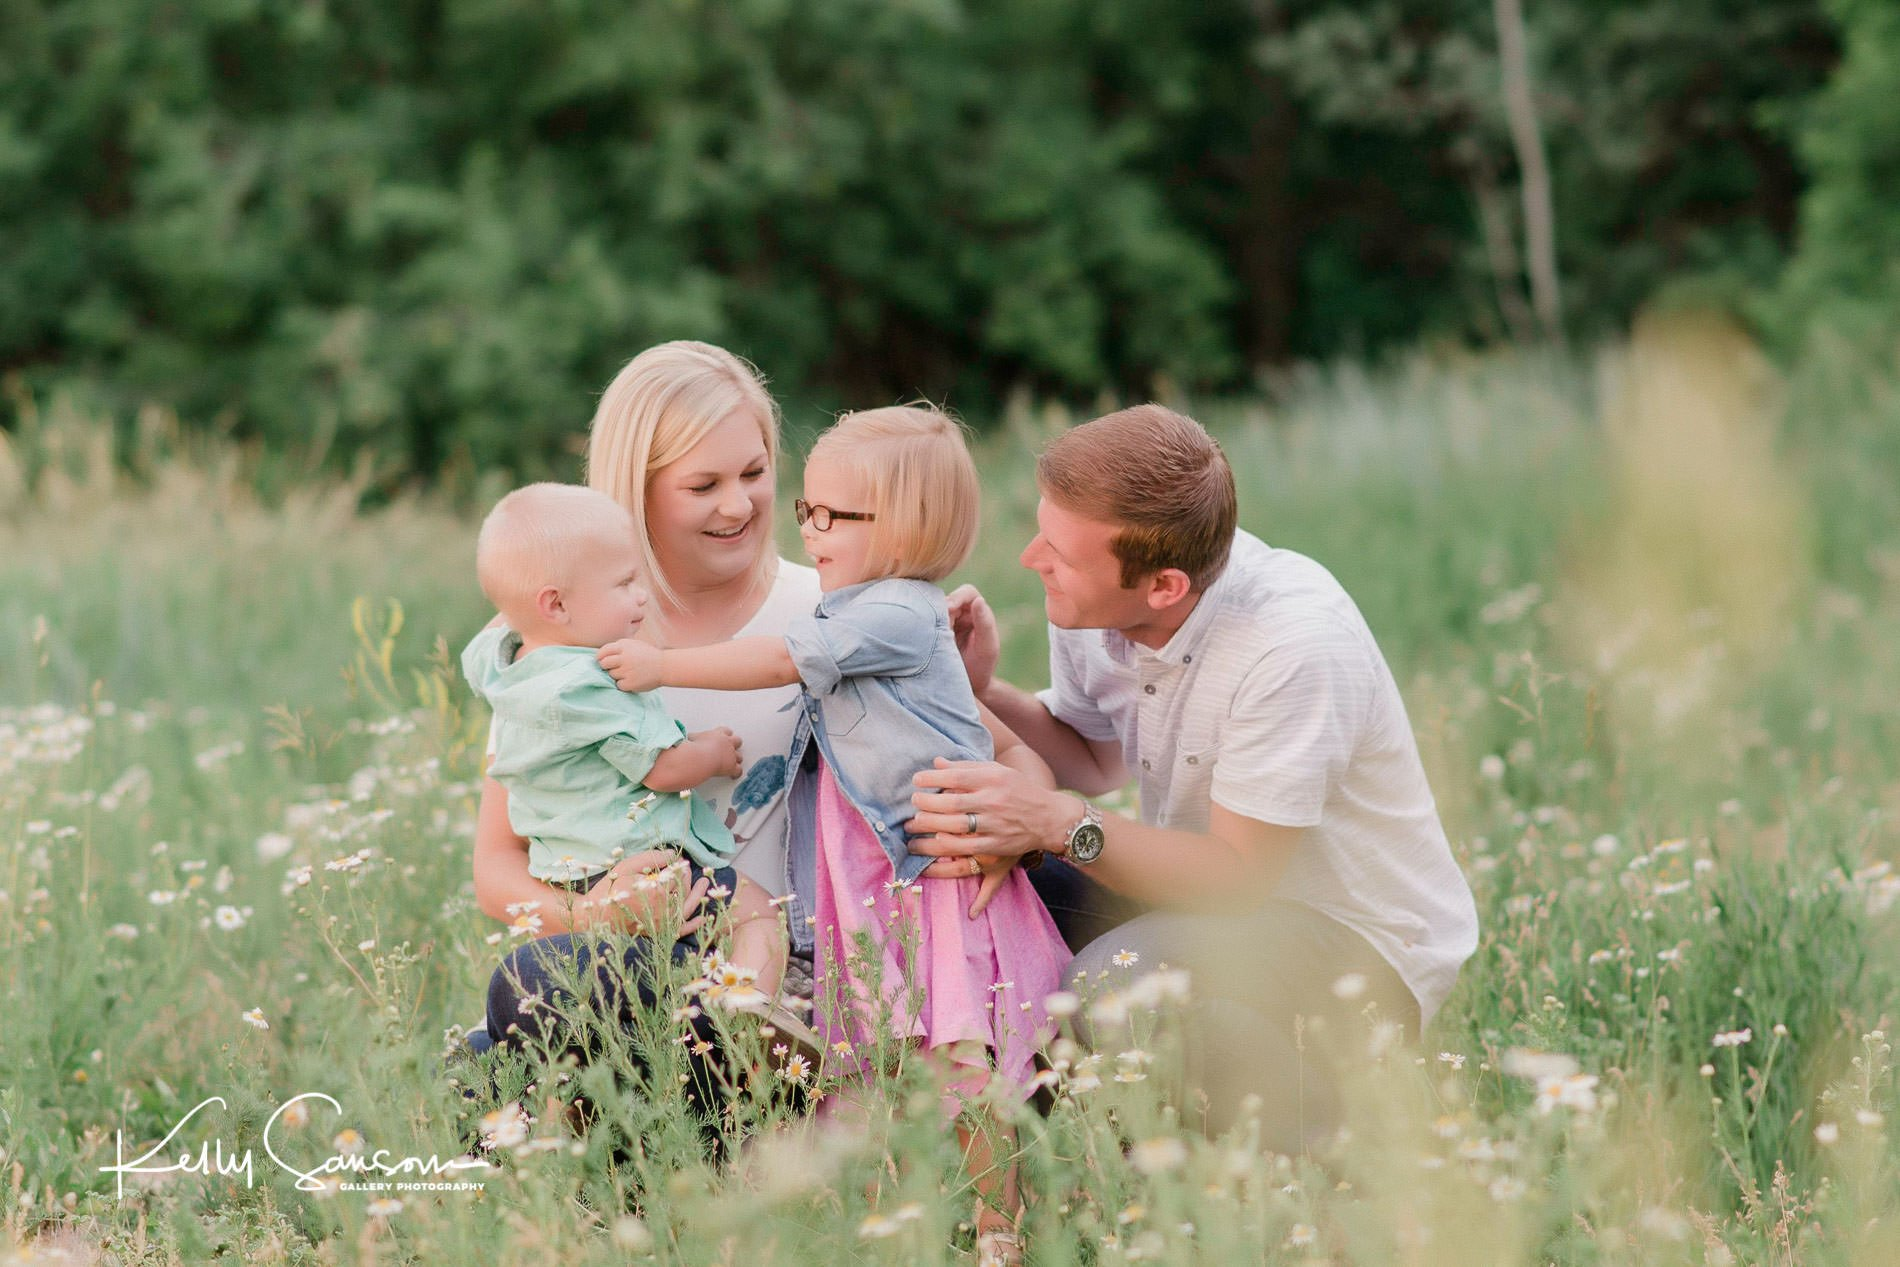 A young family playing with a dandelion in tall grass for Ogden portrait photography.